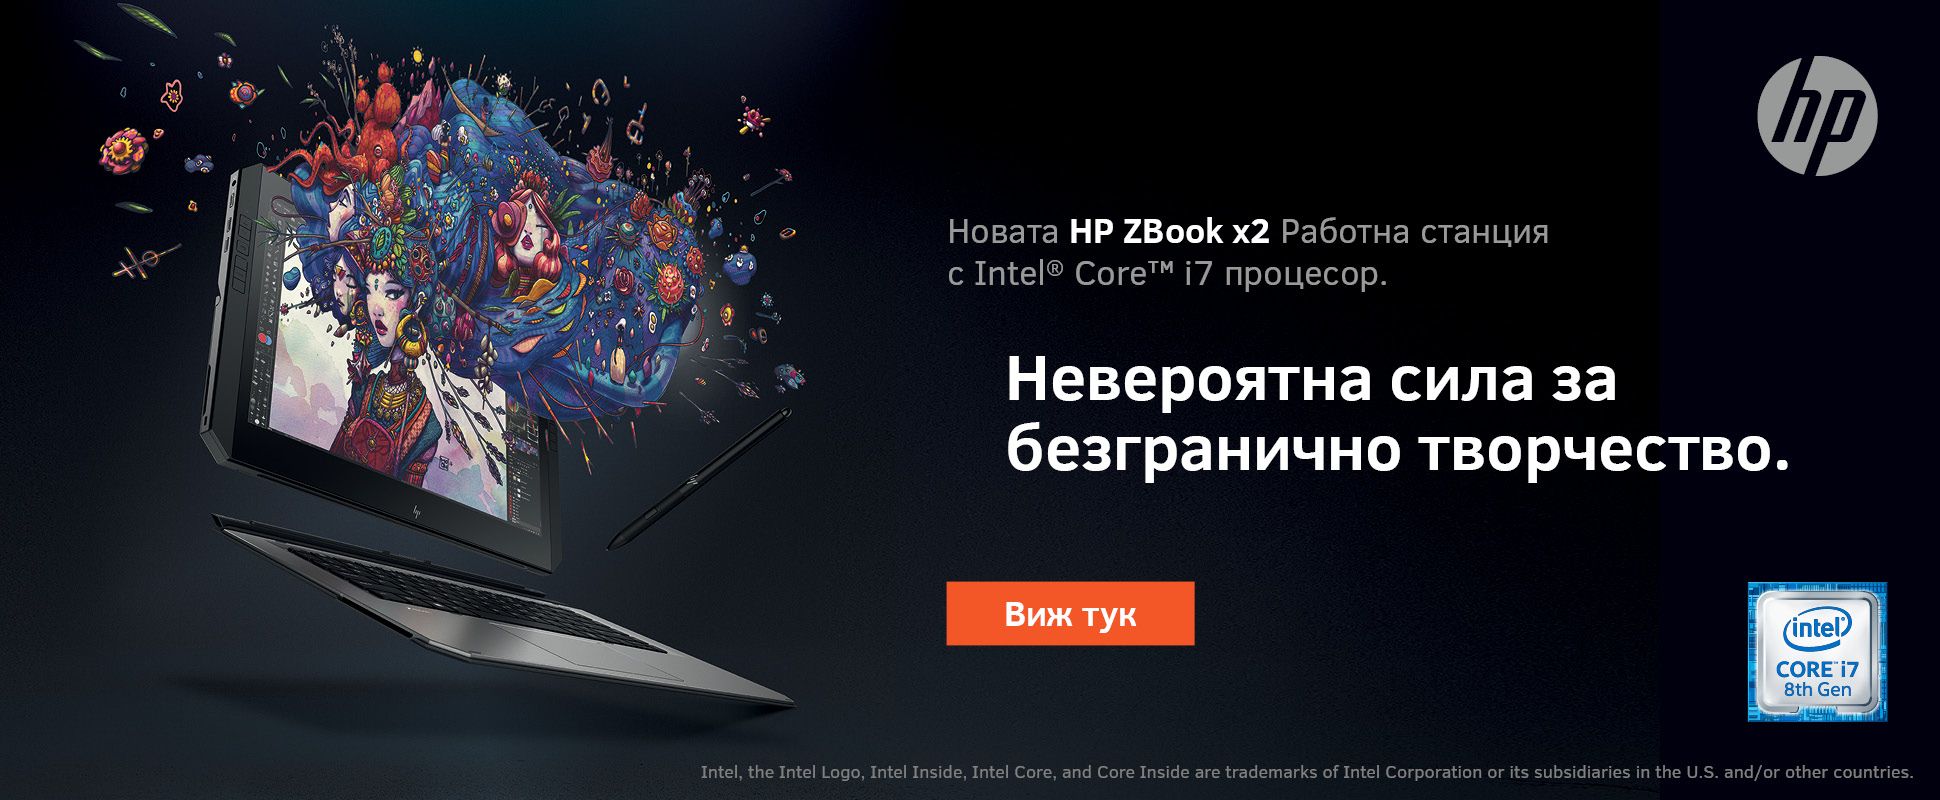 1940x800 pcshop slider hp zbook 04.2019.jpg